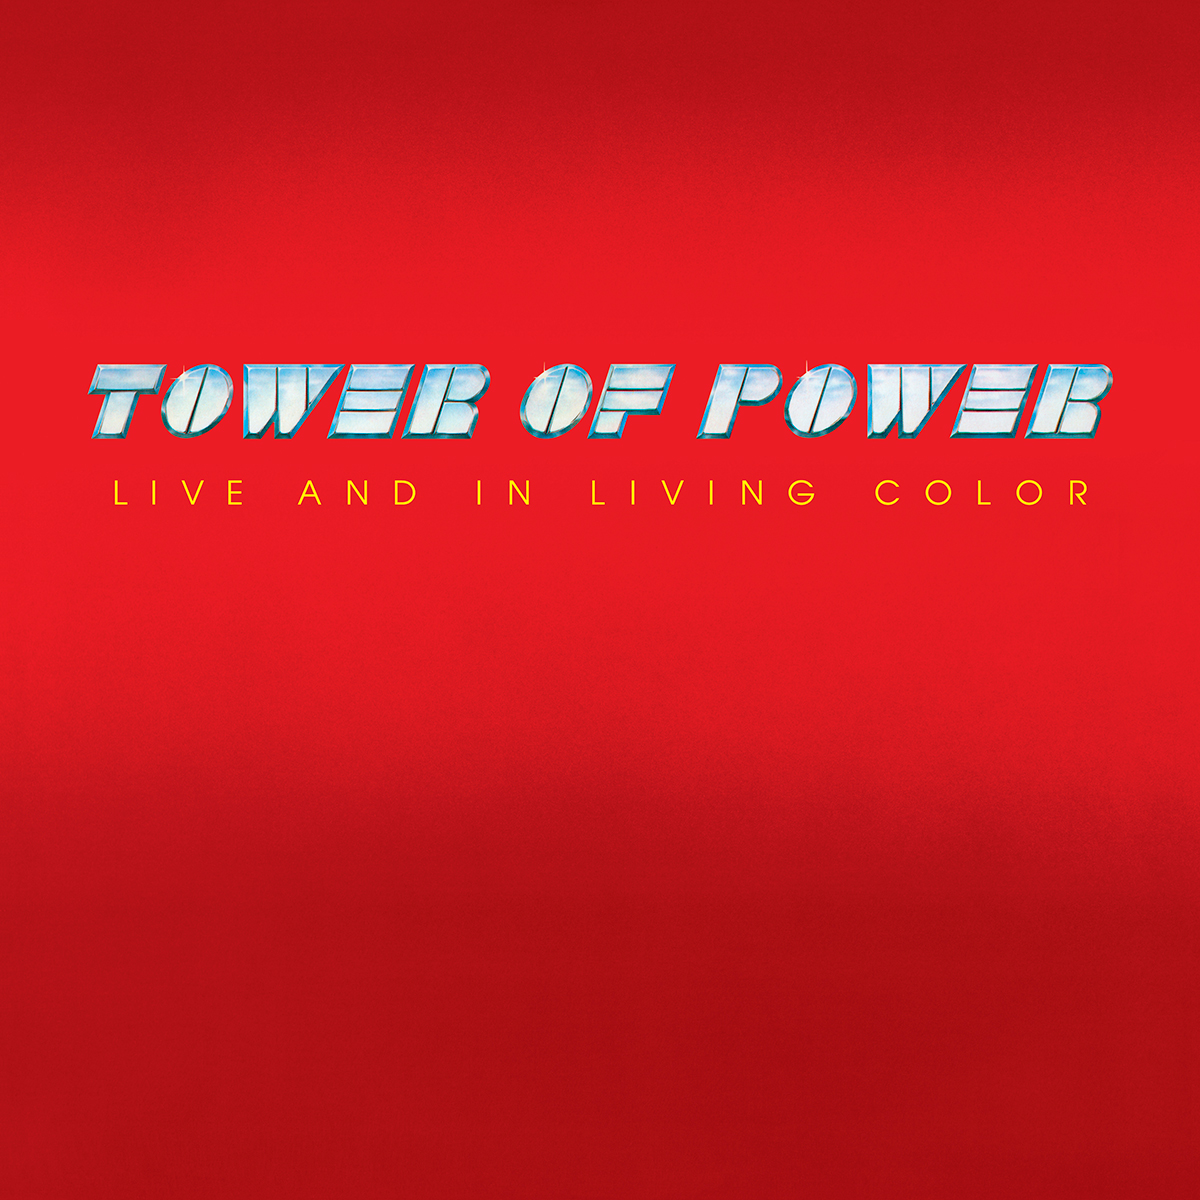 Tower Of Power - Live And In Living Color (180 Gram Audiophile Vinyl/Limited 40th Anniversary Edition)